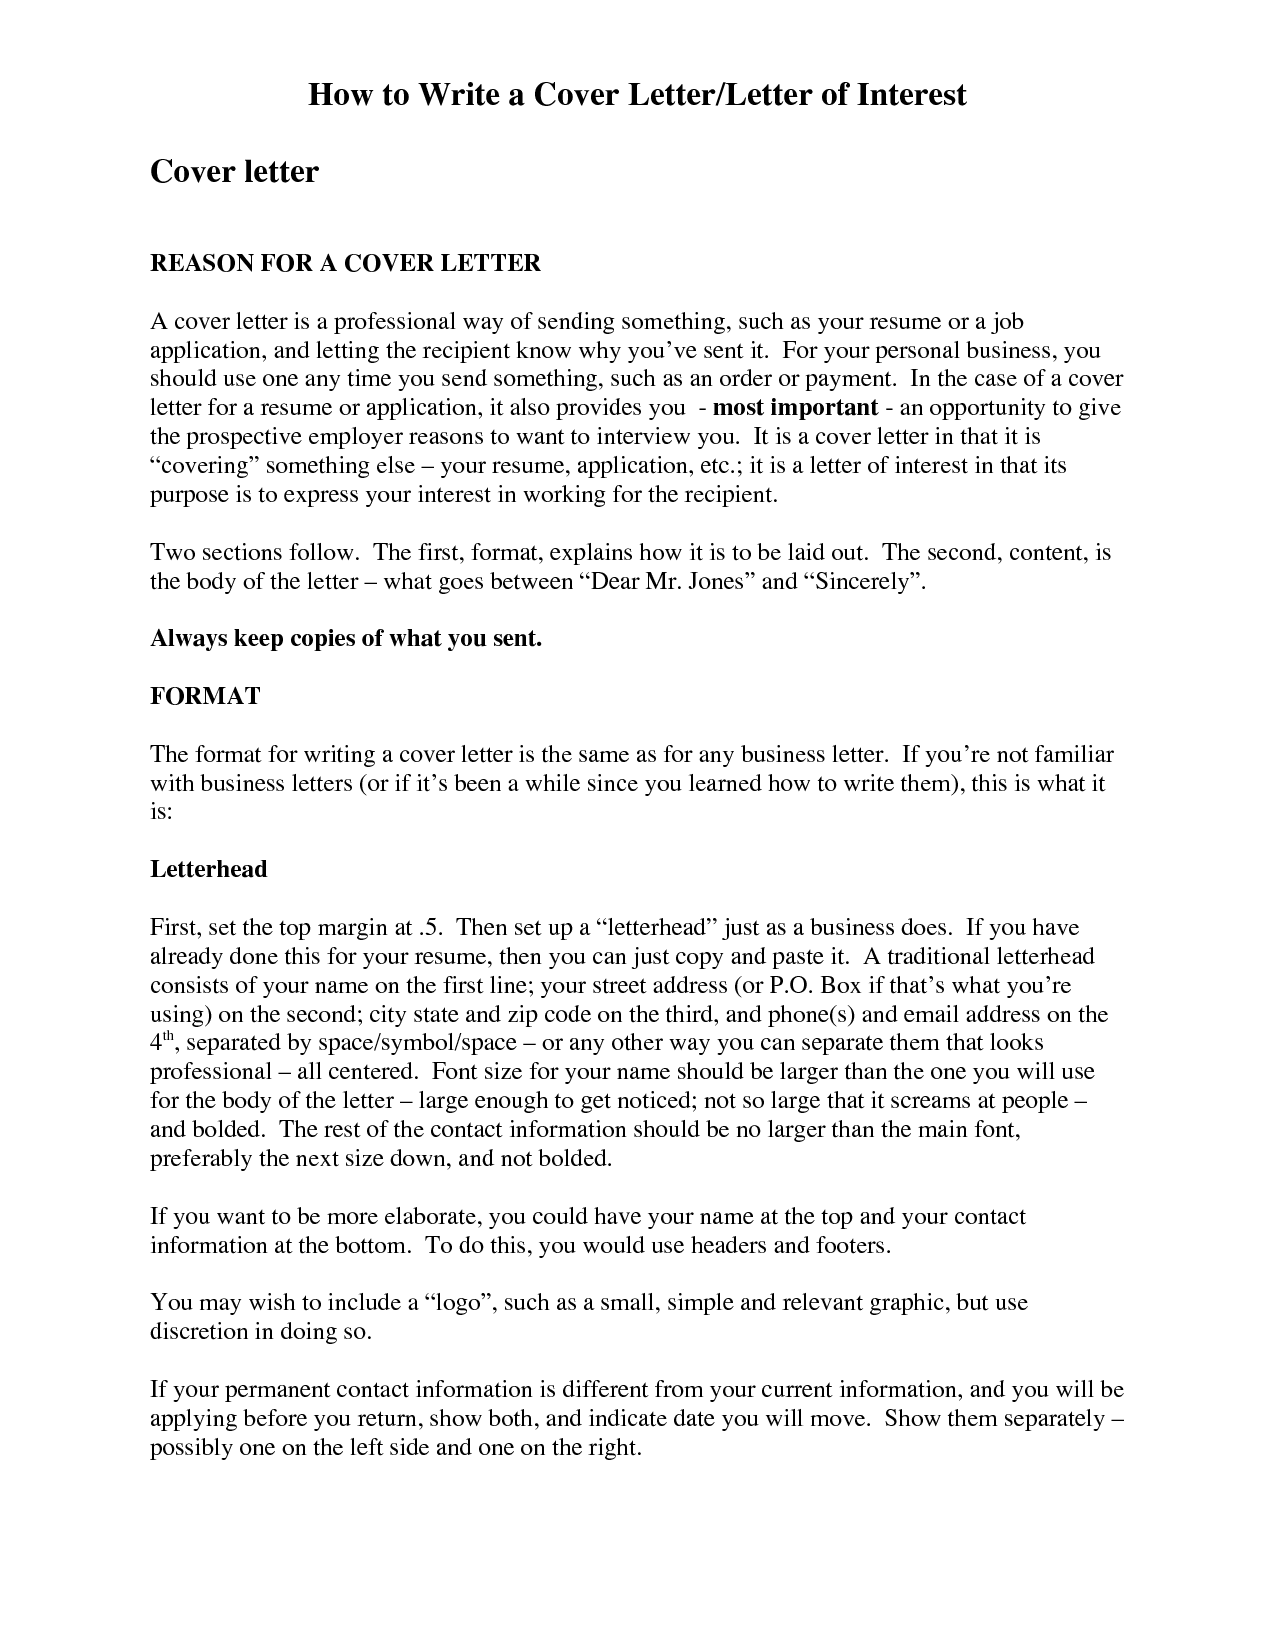 How to write a cover letter of interest example for a job for How to wrie a cover letter